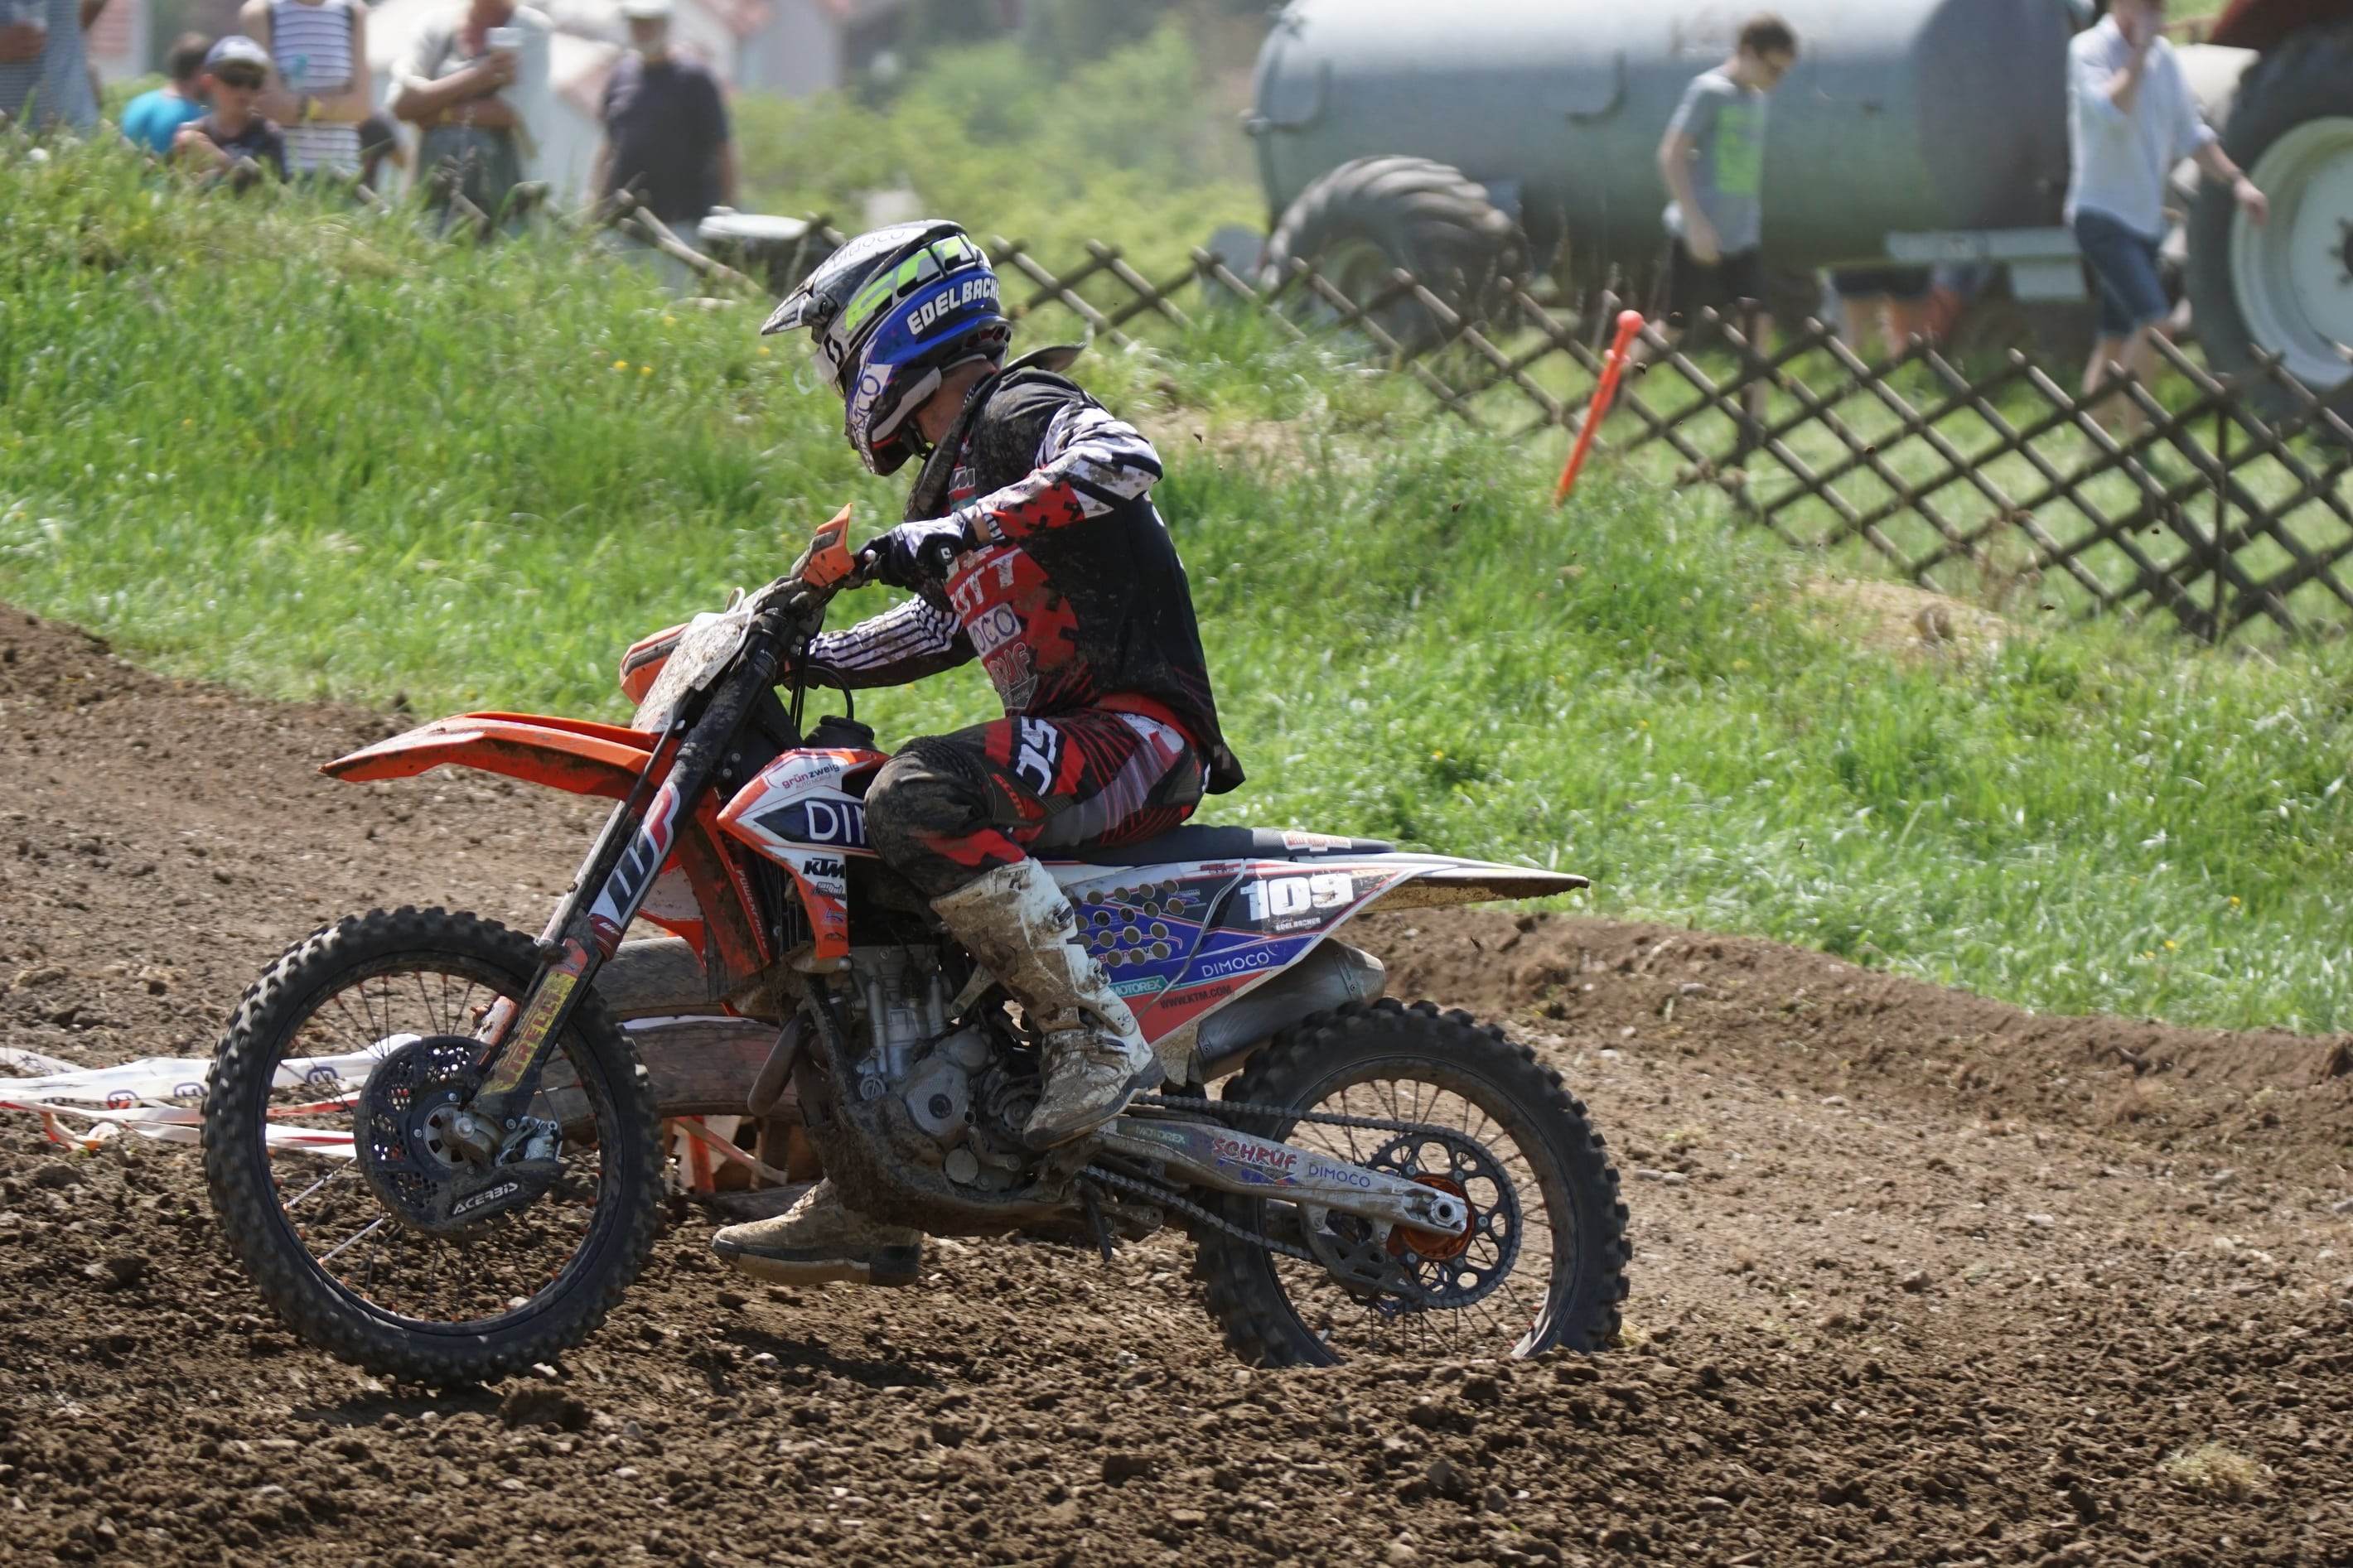 DSC 441_Moto Cross Sittendorf Teil1 am 29.04.2018